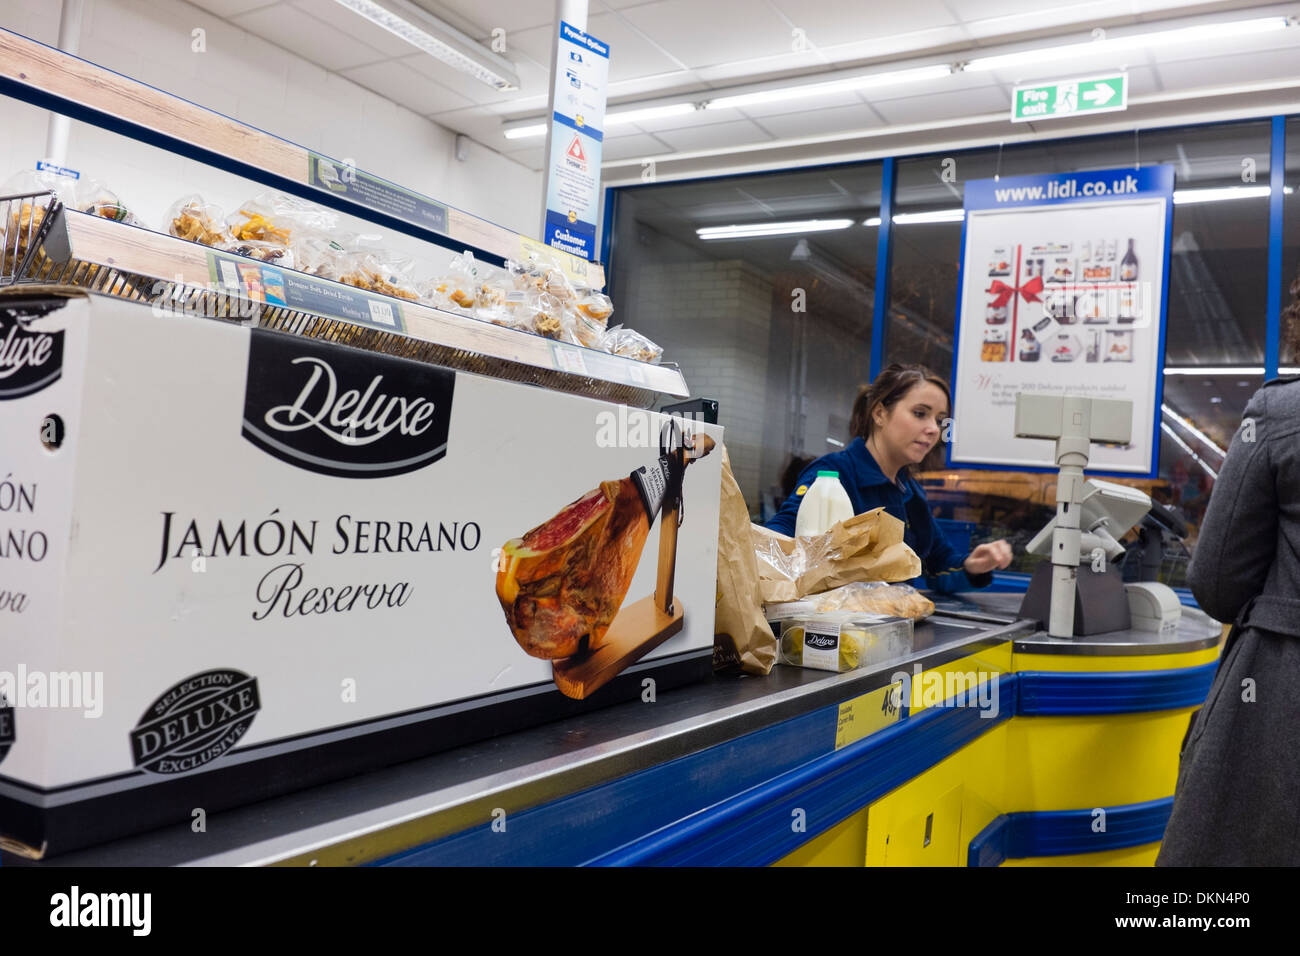 A whole Serrano ham, one of Lidl discount supermarket 'Deluxe' range of foods, at the checkout, about to be scanned, UK - Stock Image